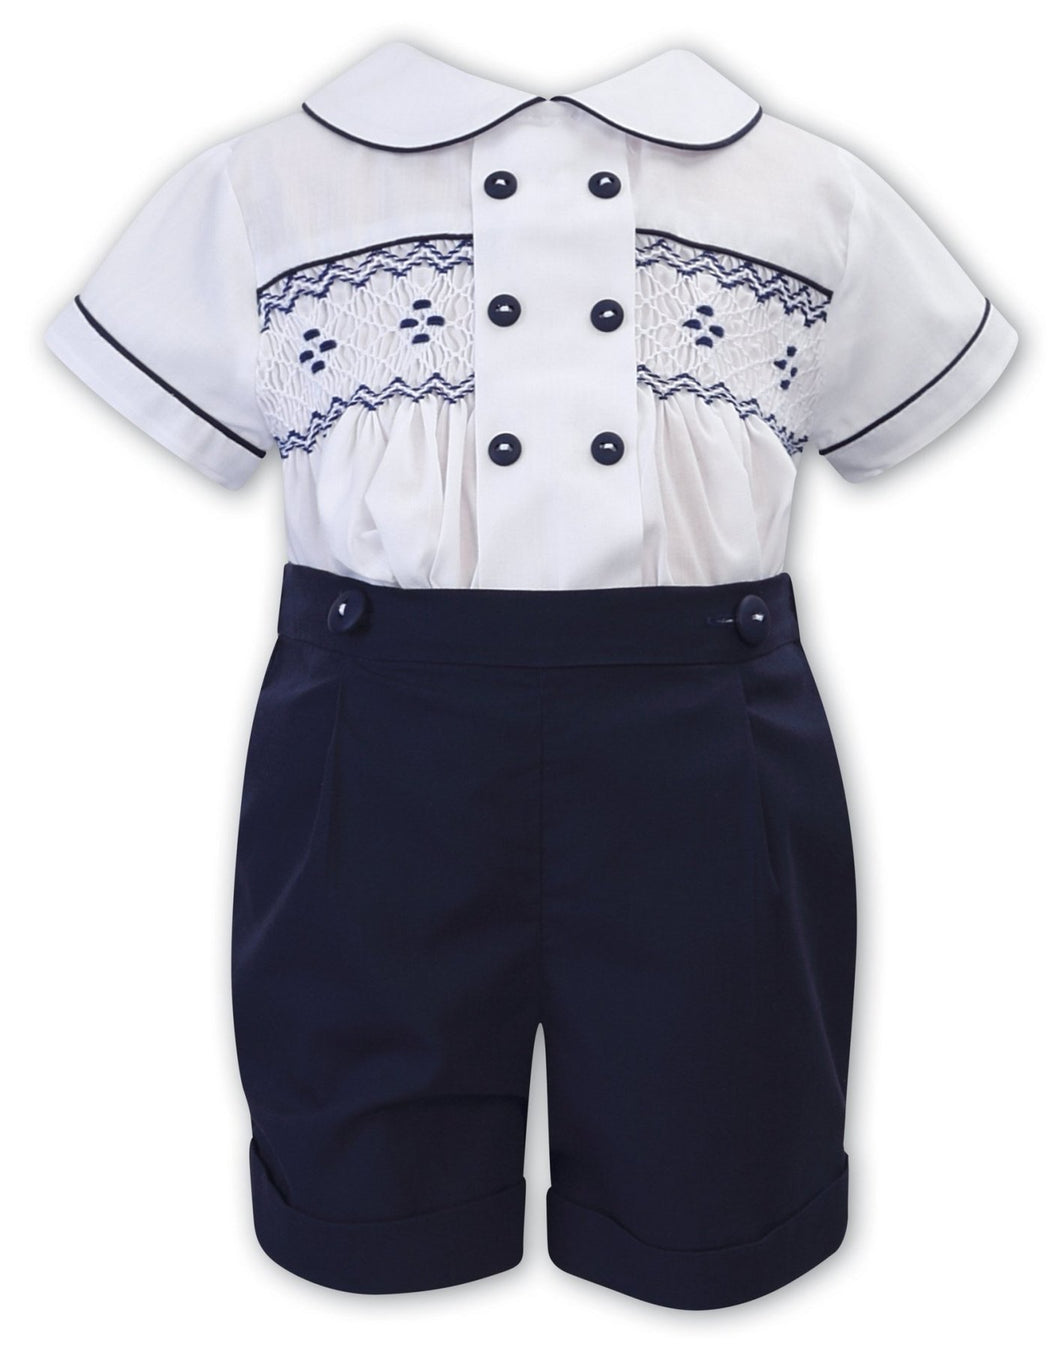 Boys 2 Piece Short Sleeved Set, Hand Smocking, Embroidered and Button Detail Shirt with Peter Pan Trimmed Collar, Shorts with Button Fastening to Shirt